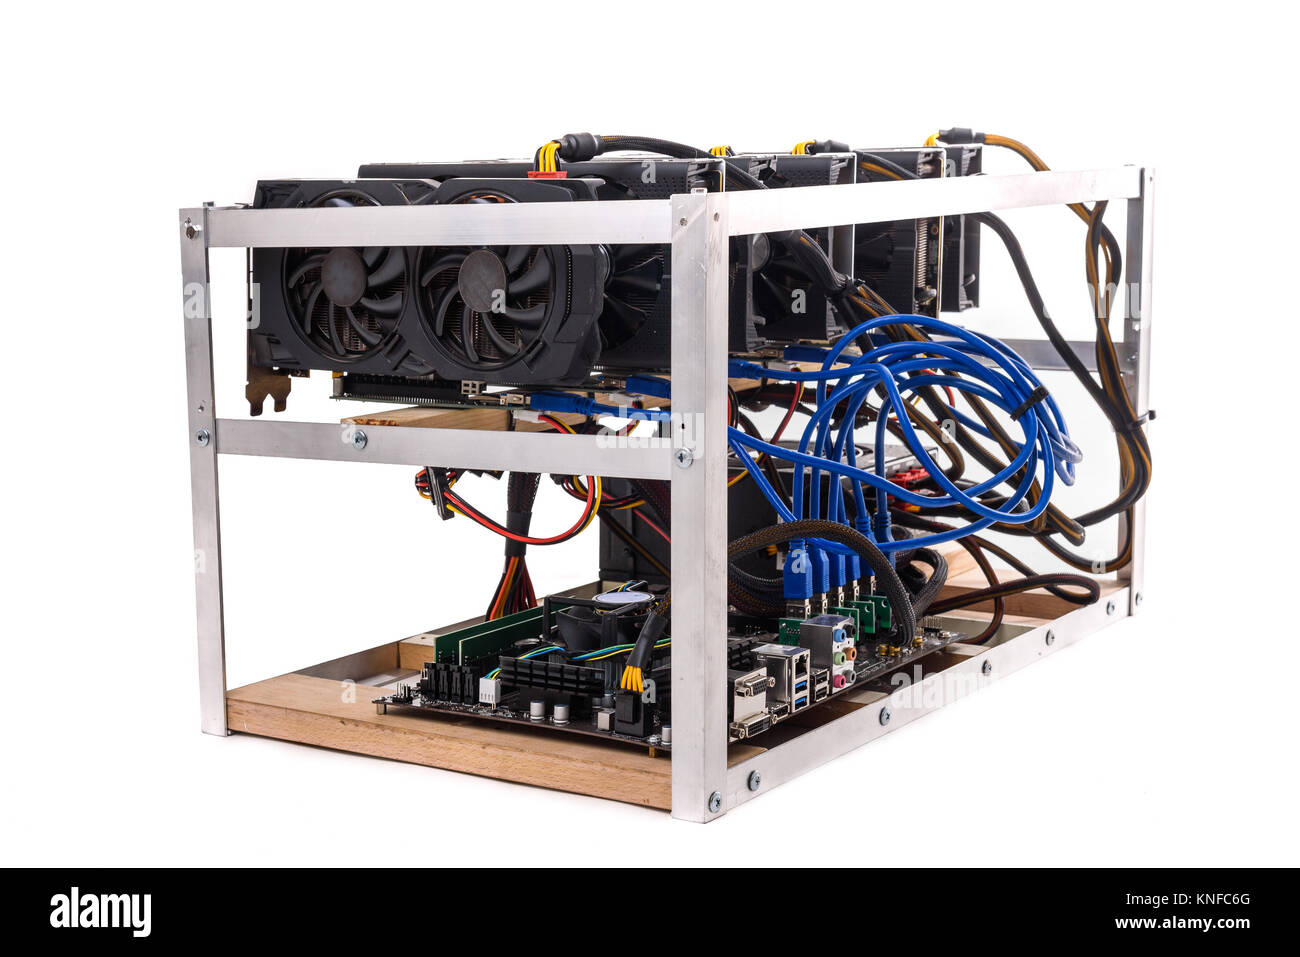 6 Rig Mining Power Supply Bitcointalk Best Coin To Mine With Amd